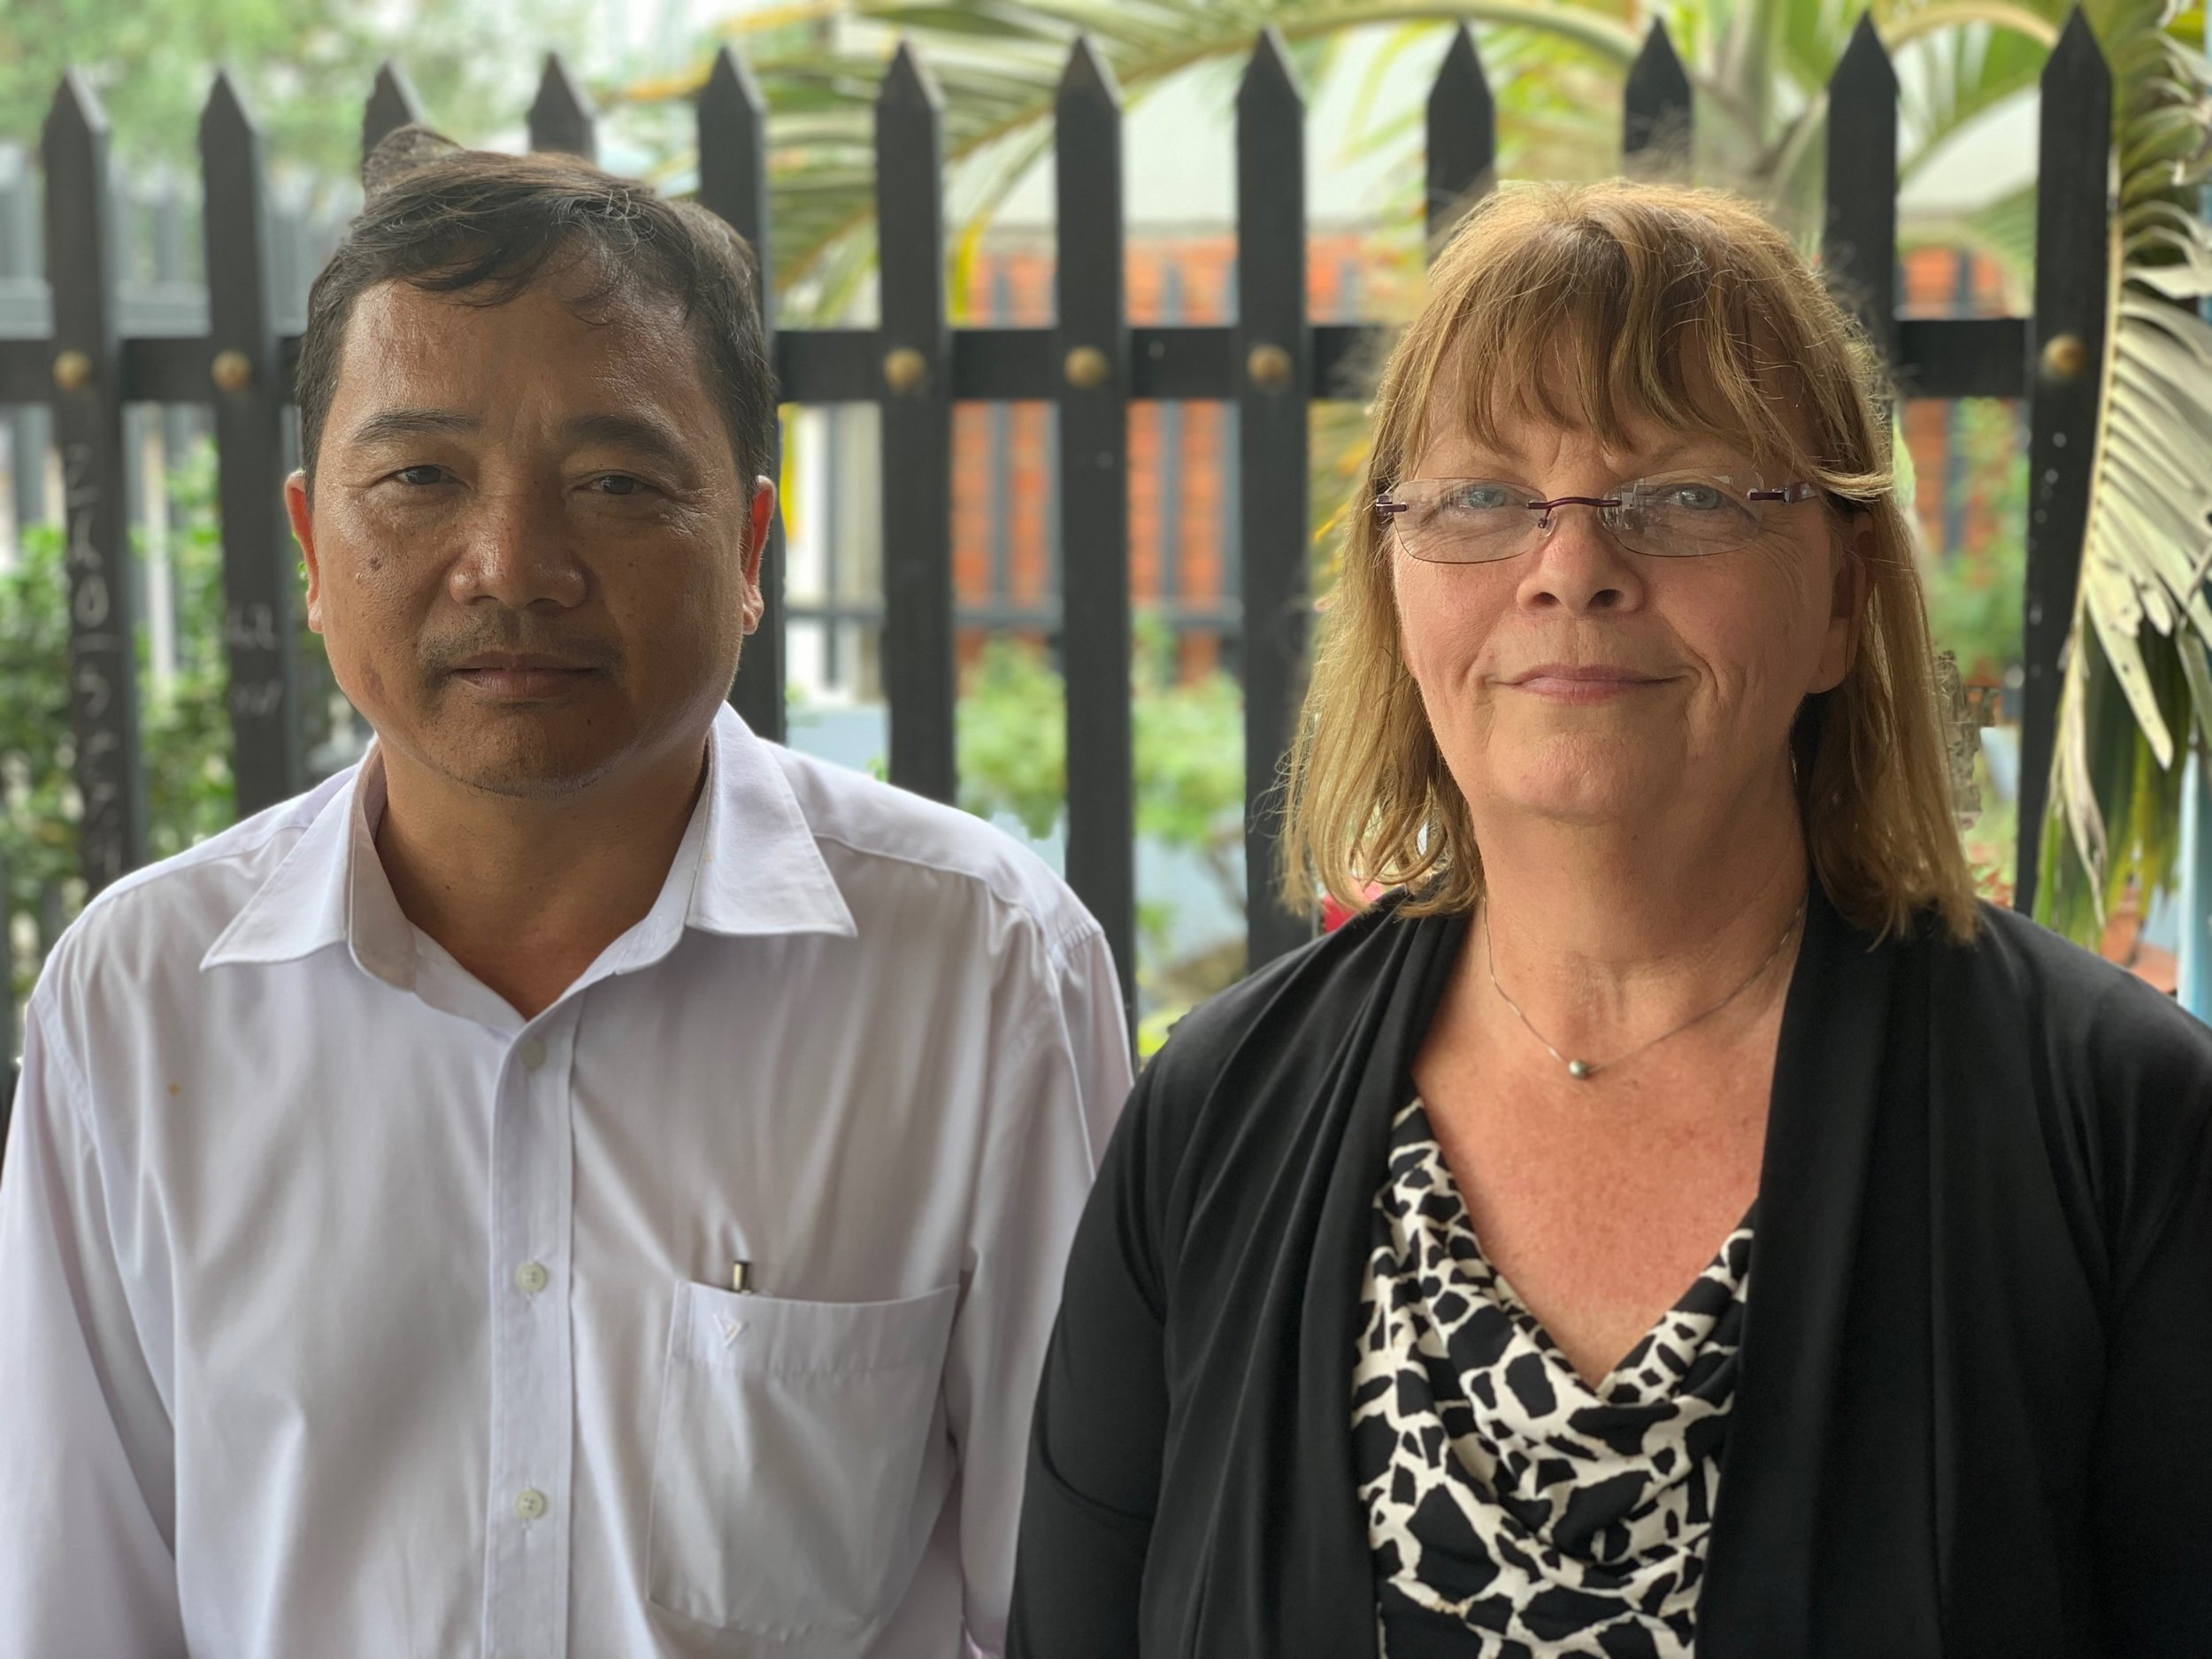 """Nguyen Hoang Giang and Jill Hubbs, whose  fathers died fighting on opposite sides of the Vietnam/American War. Giang's father, an educator, was killed in 1967 when Giang was two years old. Giang's uncle and grandfather also died during the war. Today Giang is an educator who believes """"we should do all in our ability to maintain peace for both sides."""" Jill is an educator too. Her father's plane crashed into the Gulf of Tonkin in March 1968. To this day he remains missing in action. """"In Vietnam I have met people who fought and who lost on the opposite side of the war, and they are all gracious and friendly toward me. It's been an amazing experience to connect with them."""""""